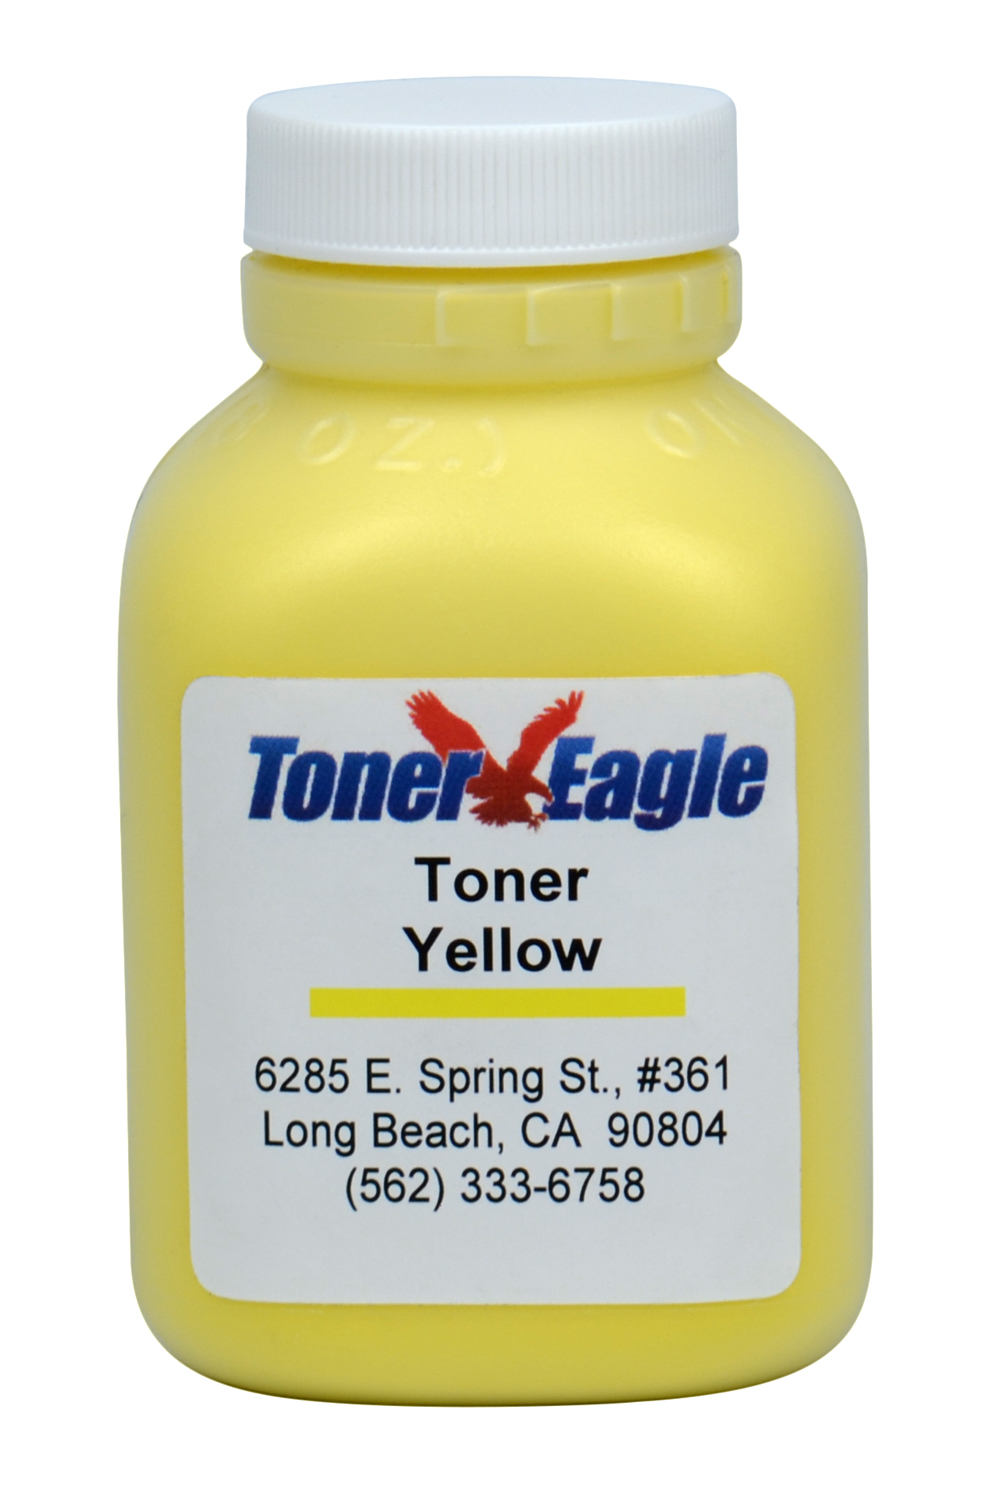 Toner Eagle HP Pro 200 M251n M251nw Yellow Toner Refill Kit with Chip. 40 Grams. 1.8K Pages. By Toner Eagle at Sears.com